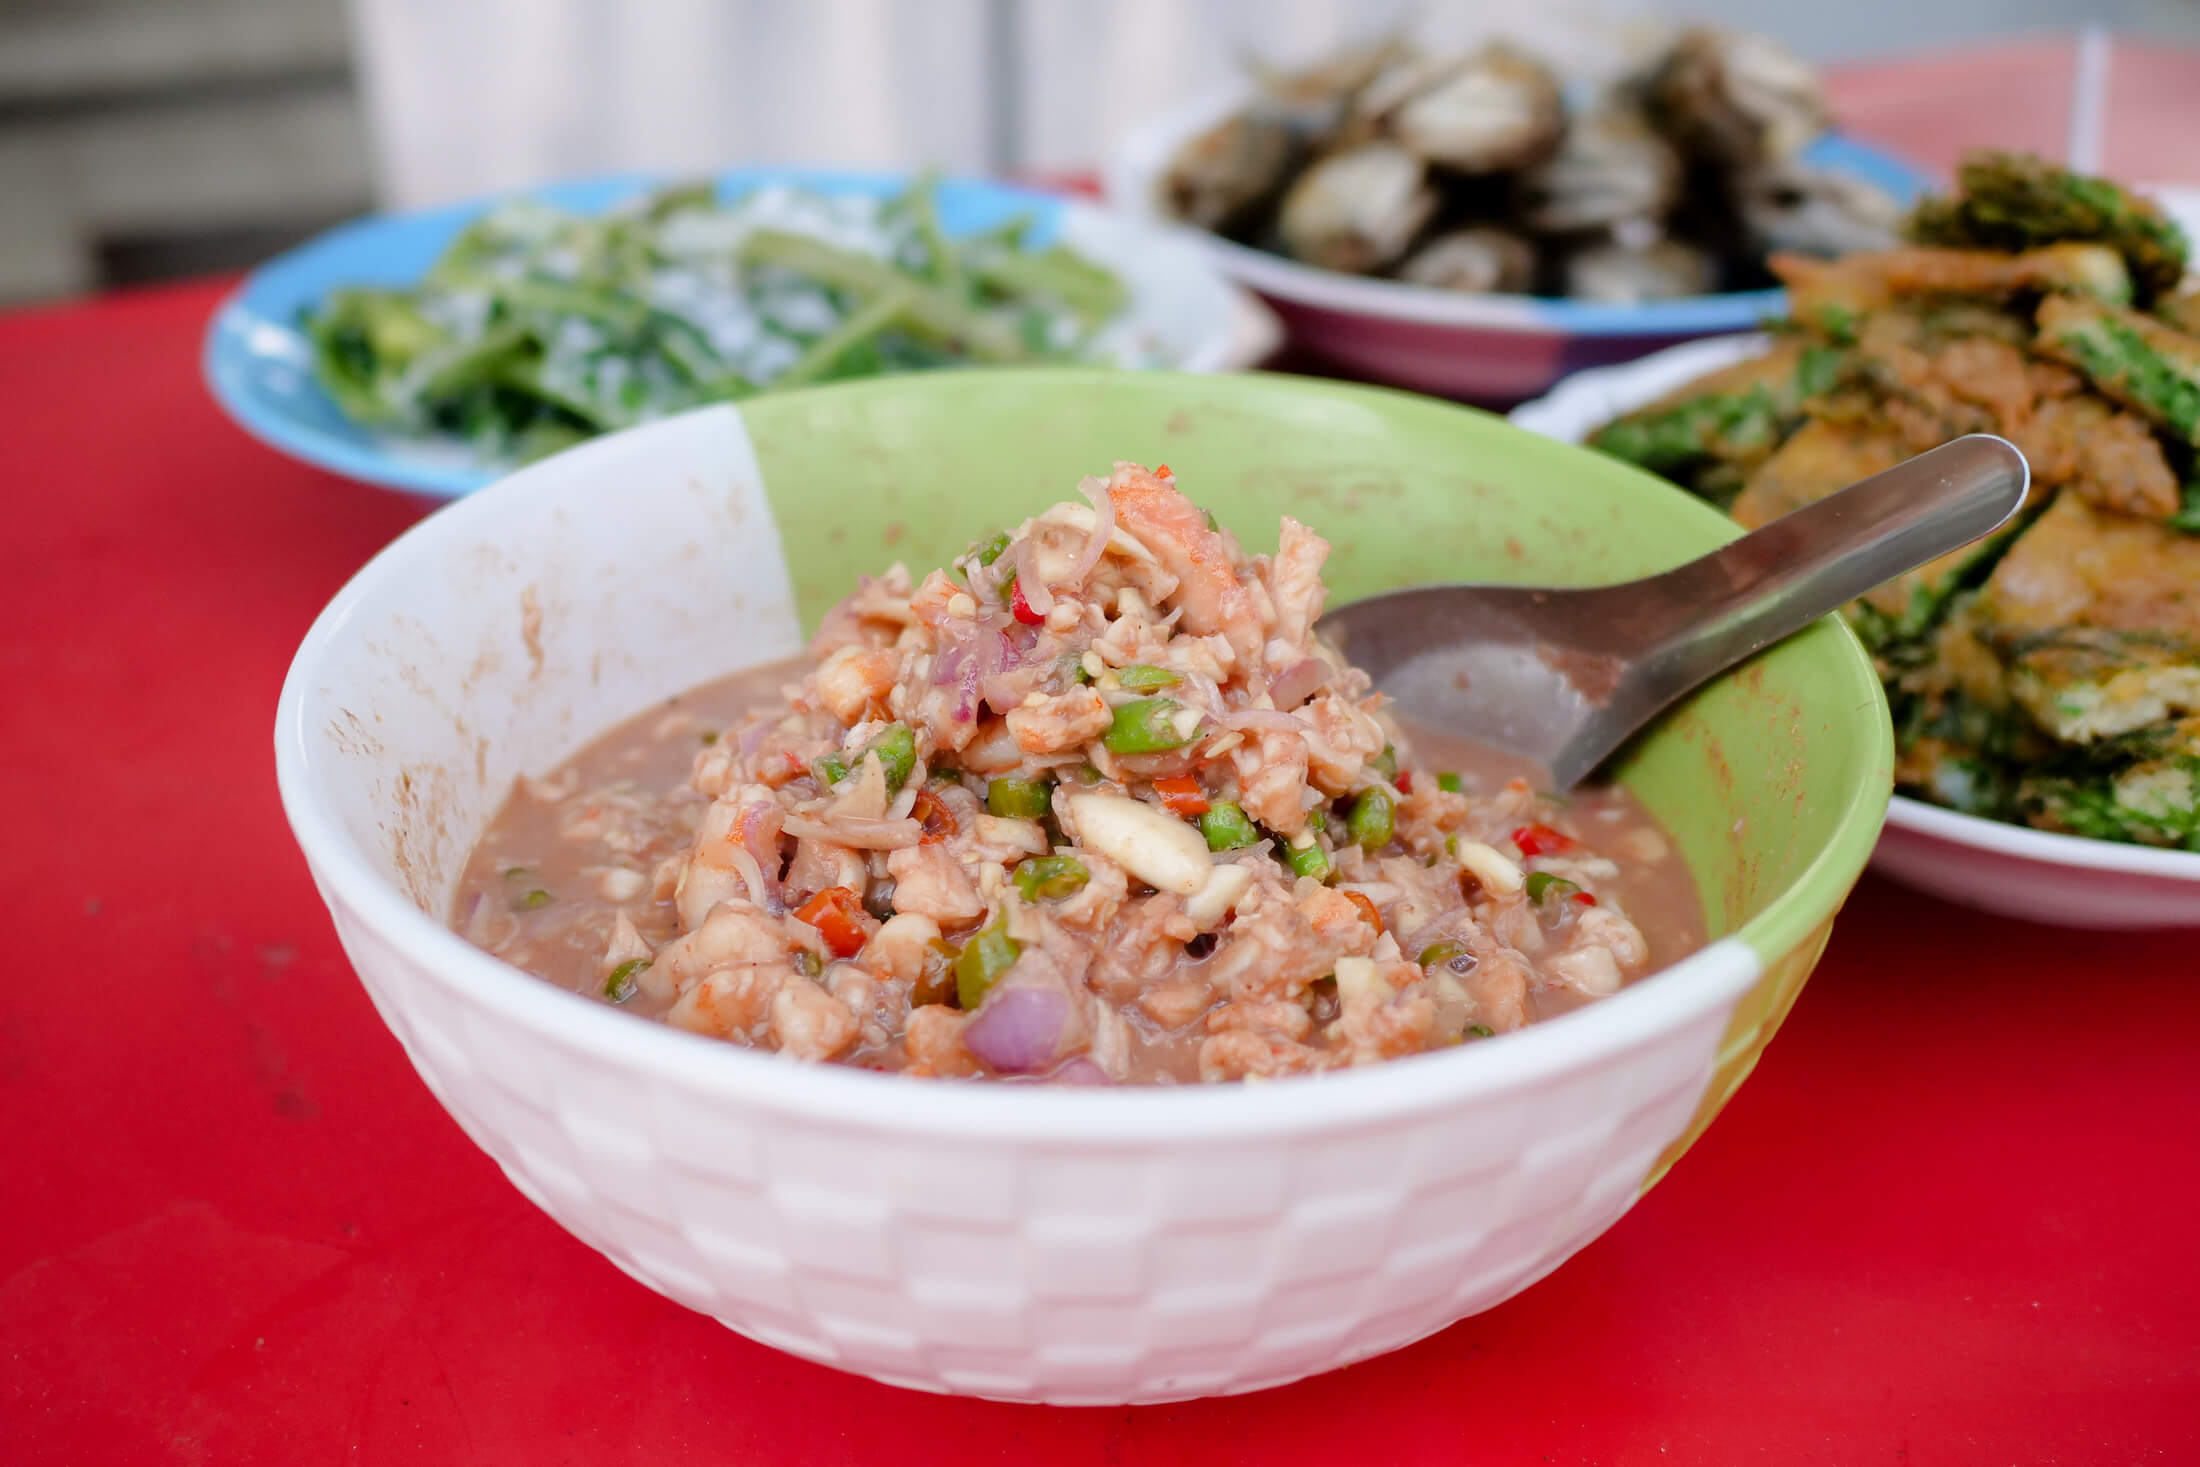 Southern Thai style authentic recipe for Thai shrimp chili dip